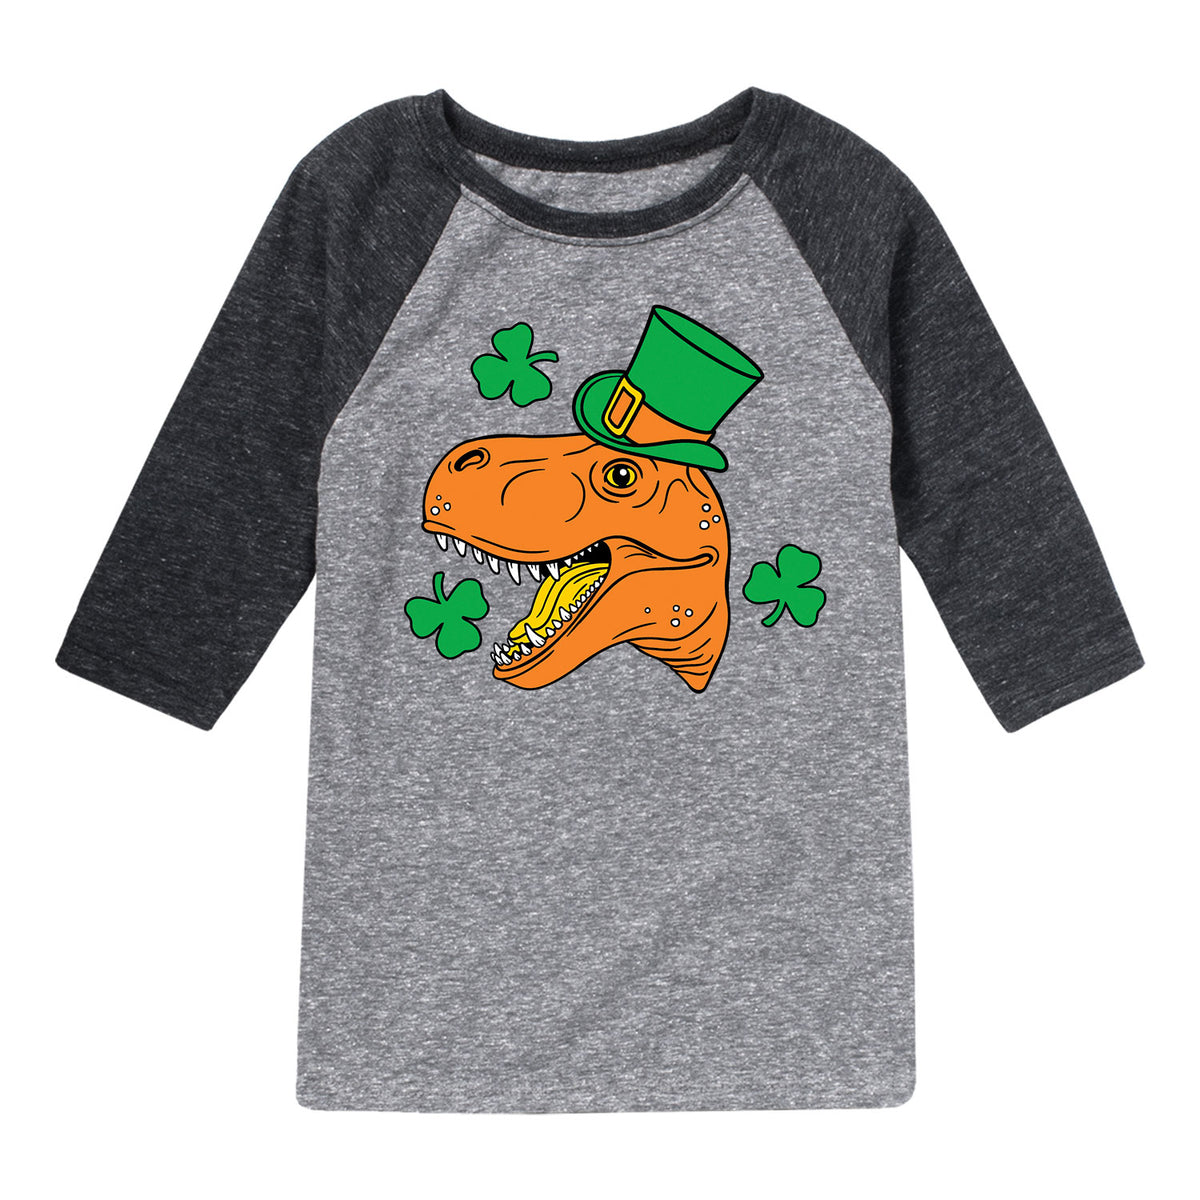 Dinosaur Face - Youth & Toddler Raglan